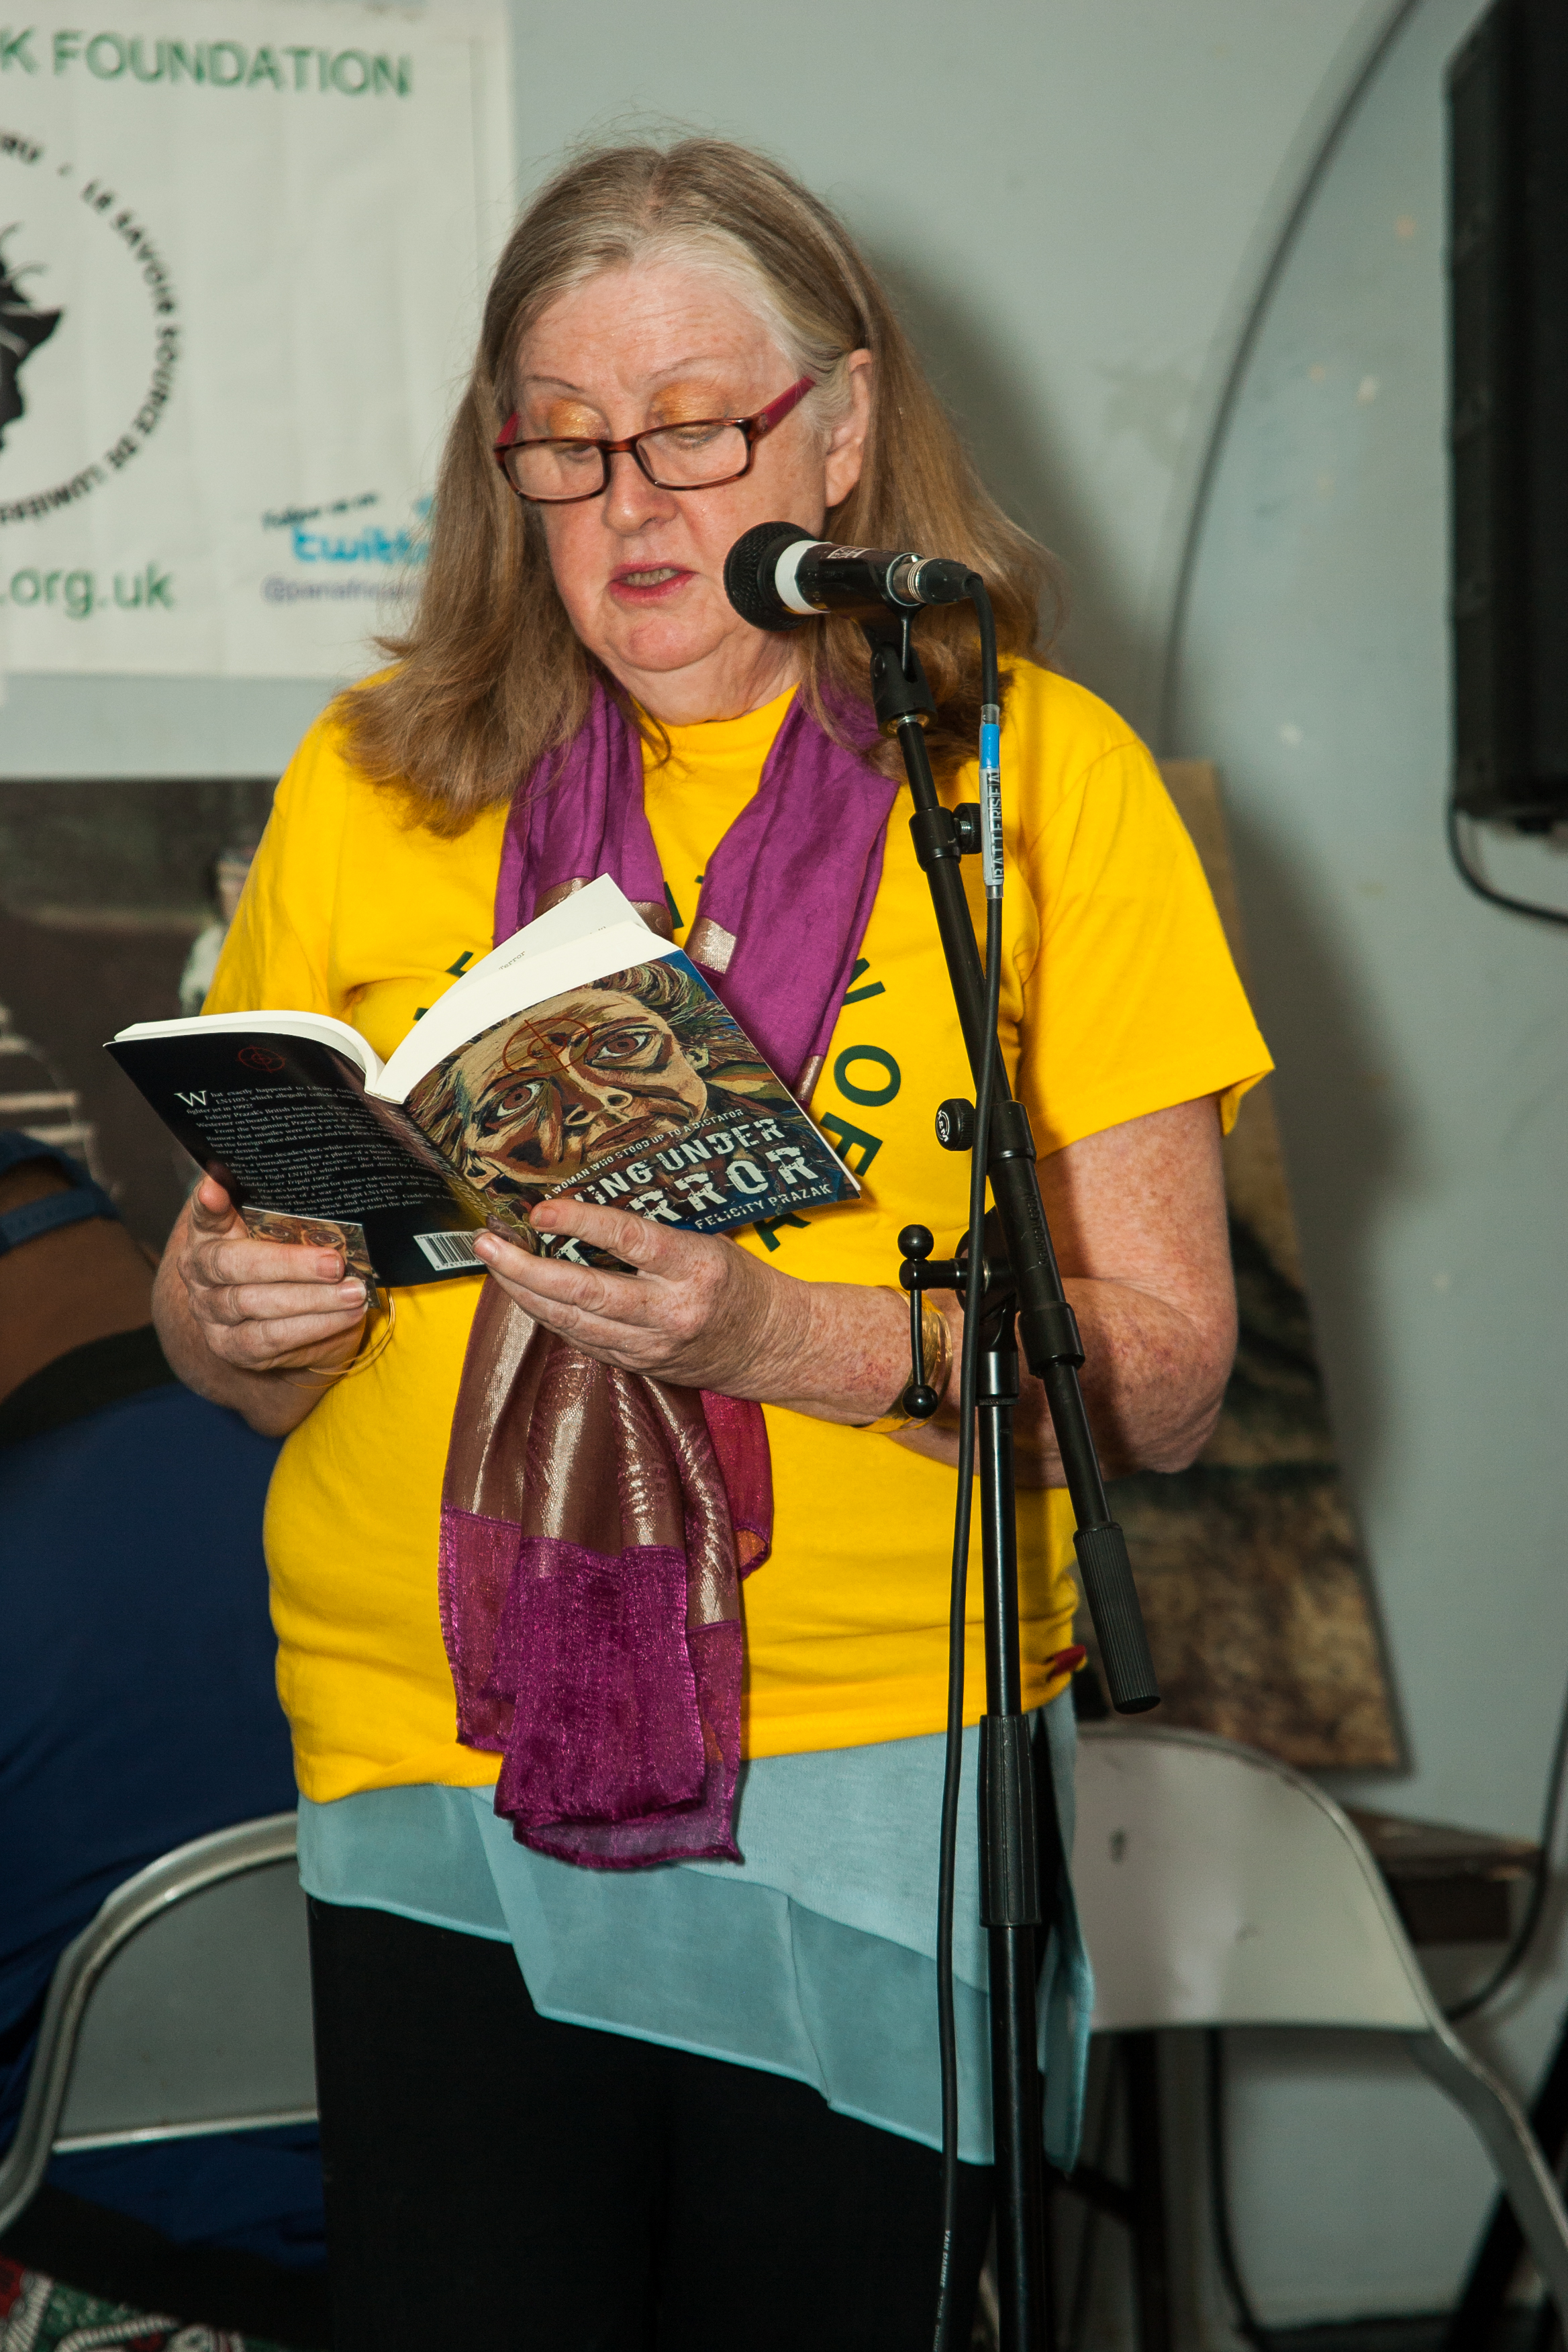 Felicity Prazak reading